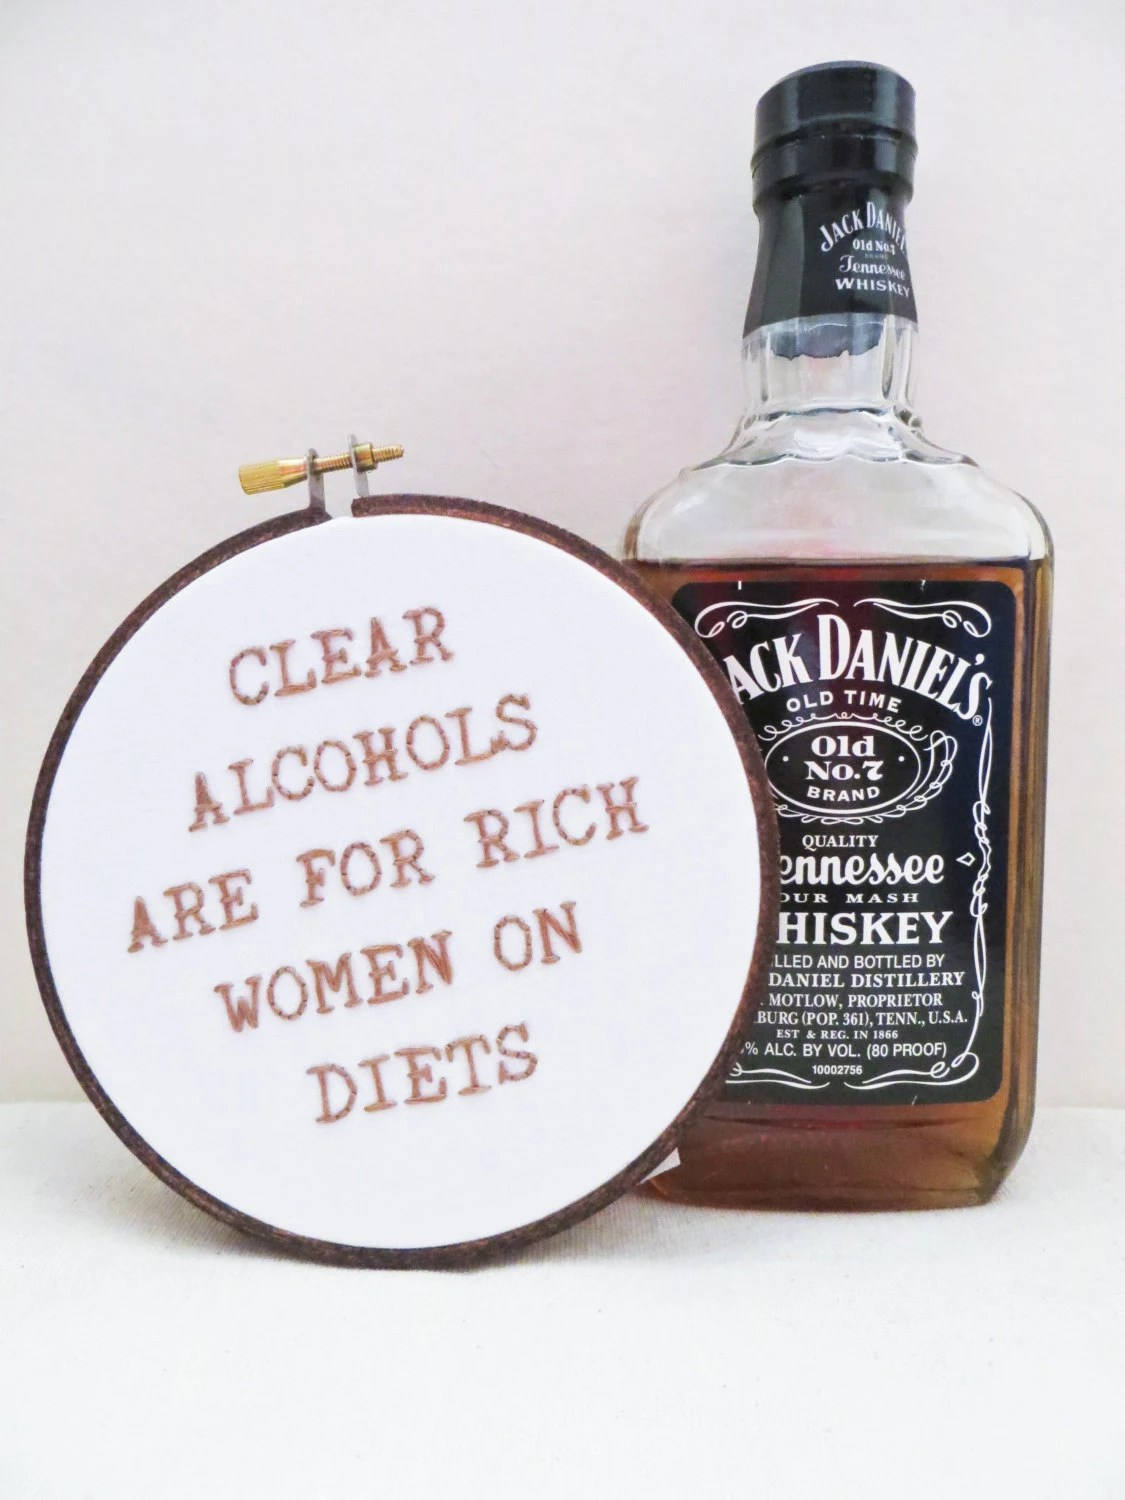 Parks and Rec TV Quote - Clear Alcohols Are For Rich Women on Diets : Kitchen Home Decor